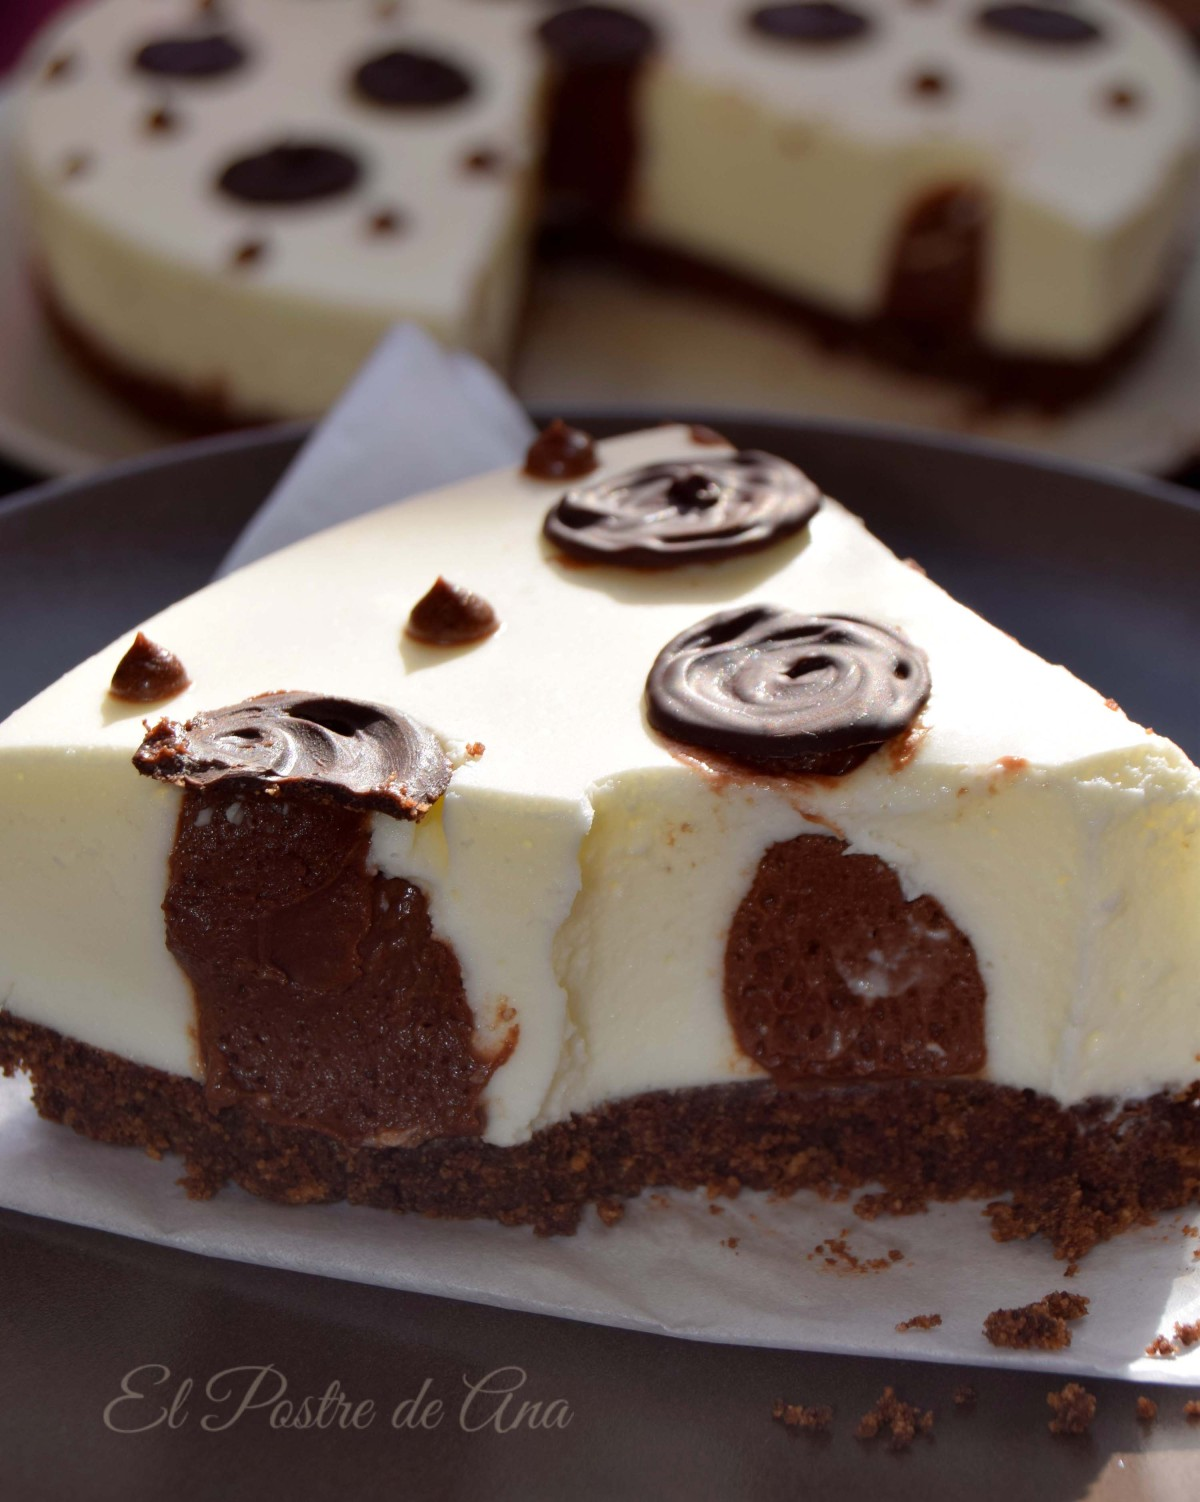 Cheesecake con lunares de chocolate